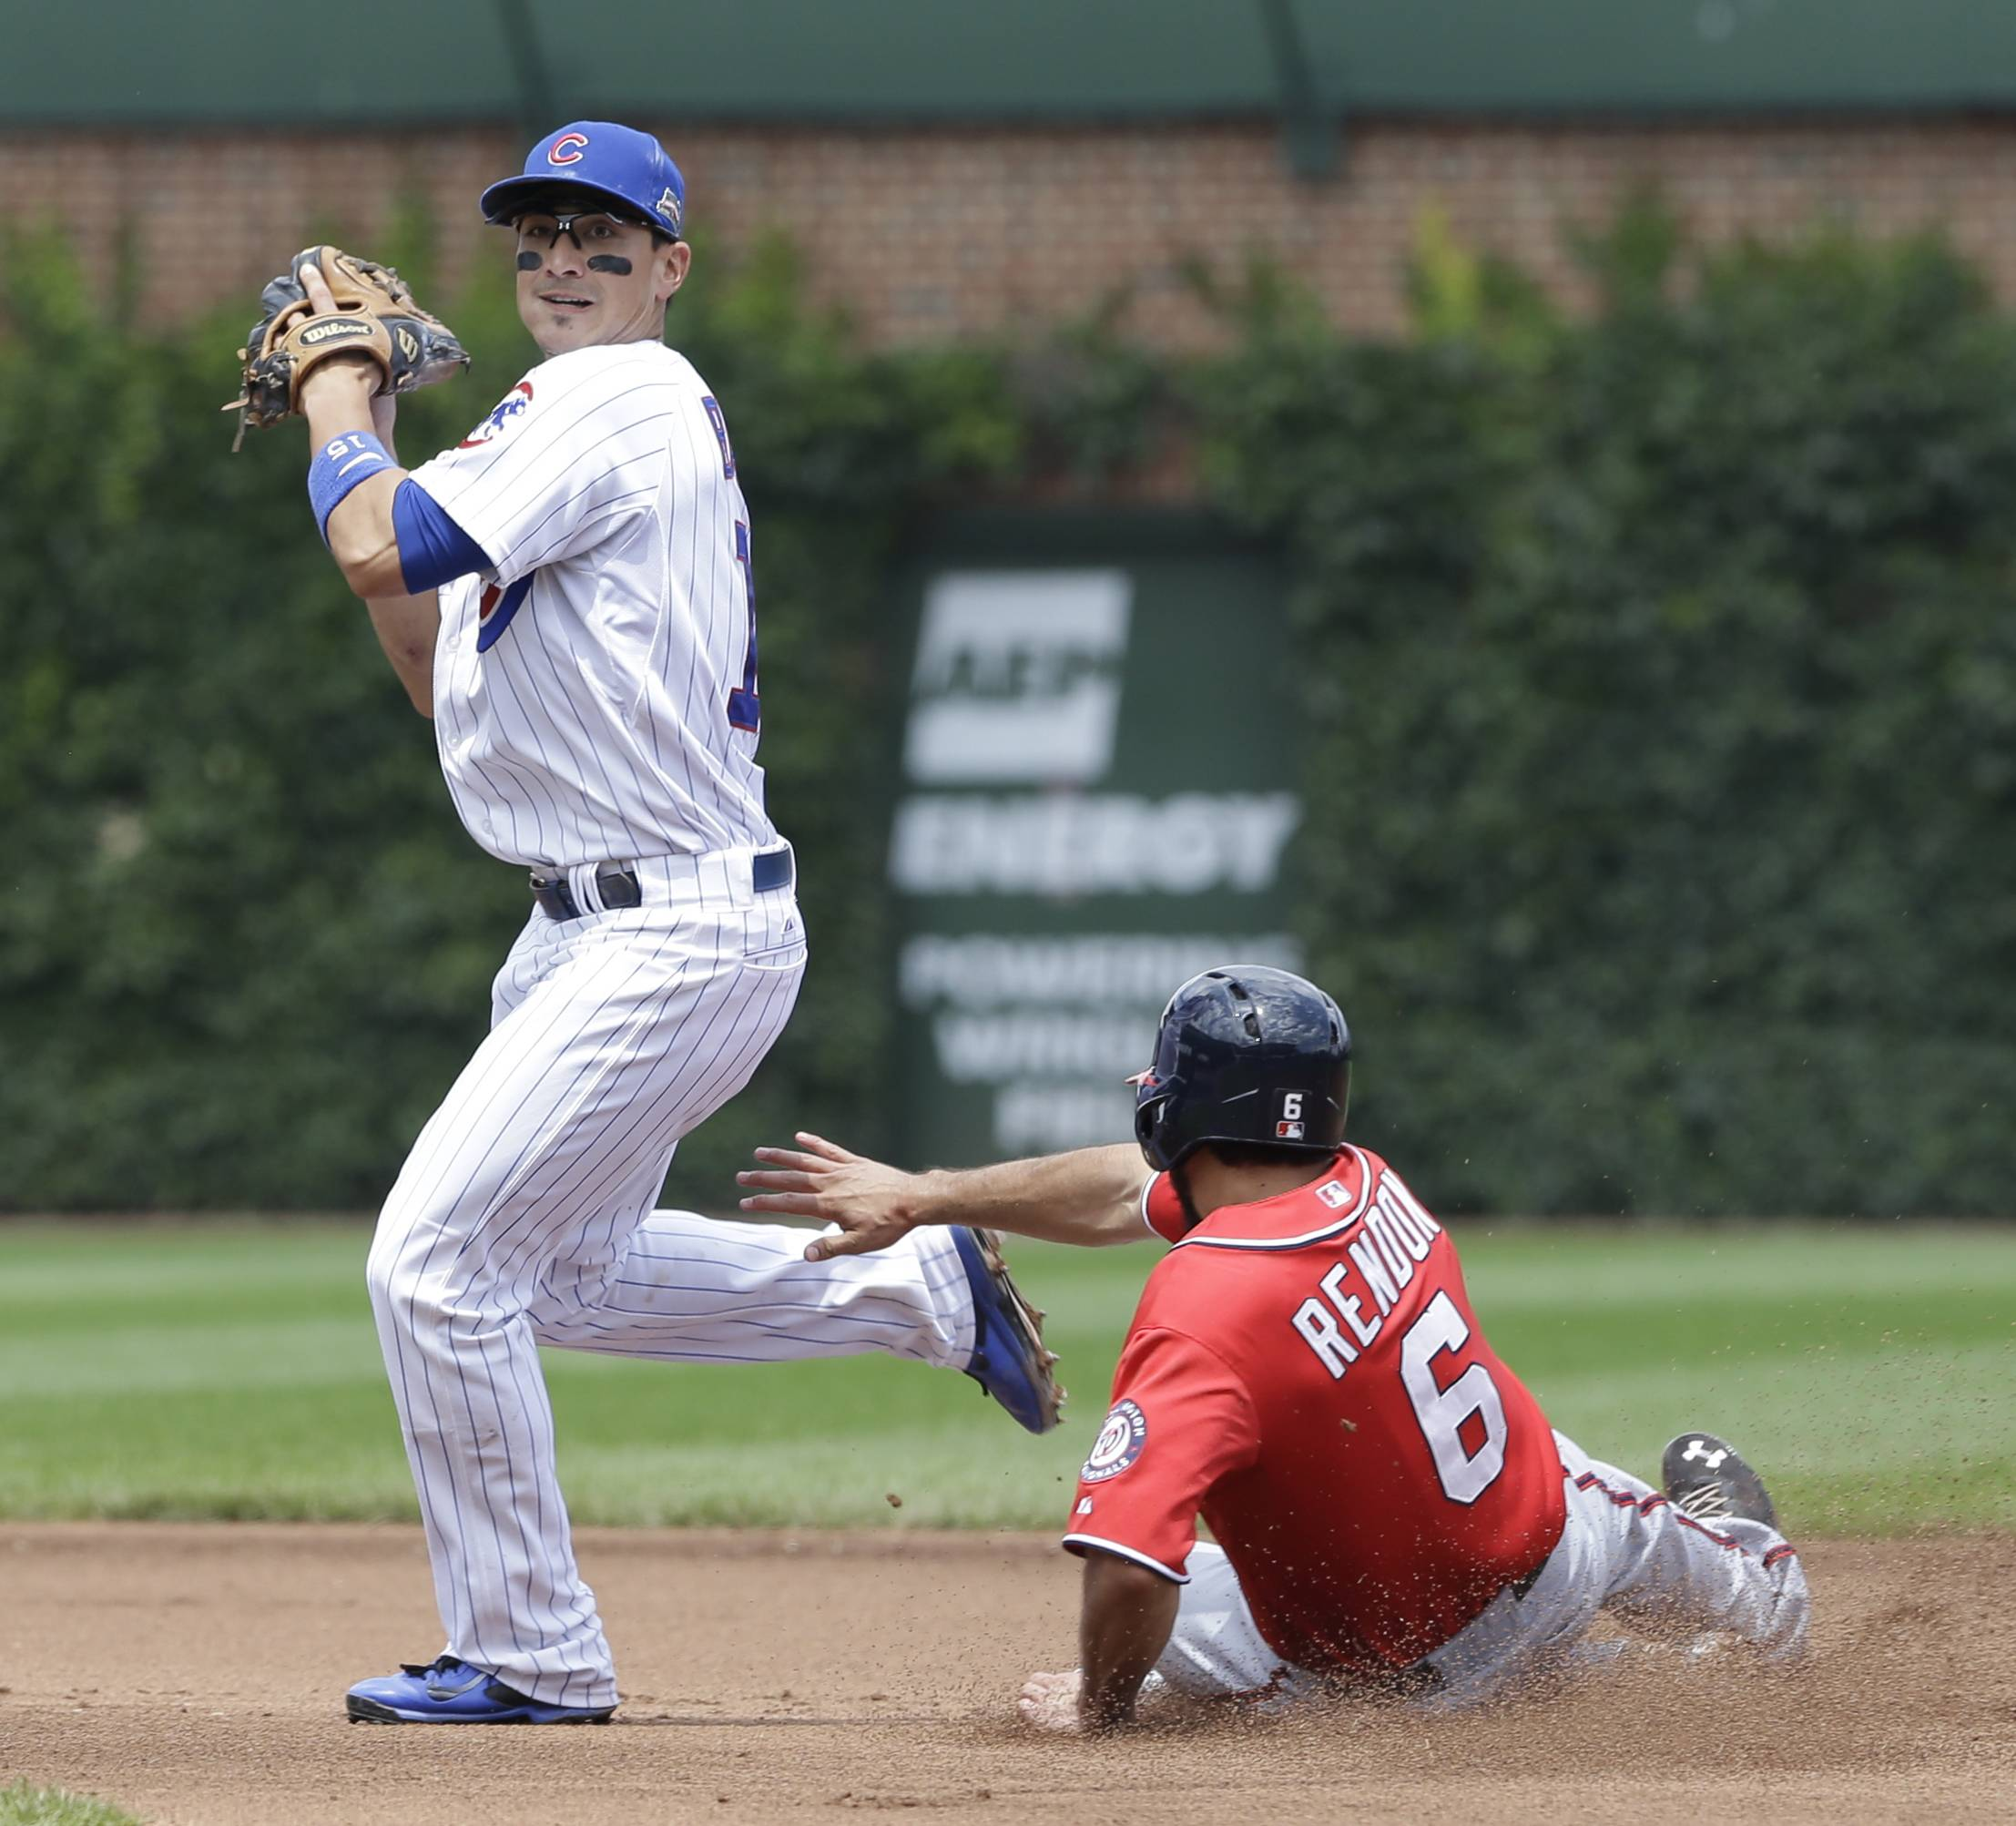 Darwin Barney, left, looks to first after forcing out Washington's Anthony Rendon at Wrigley Field on Saturday.